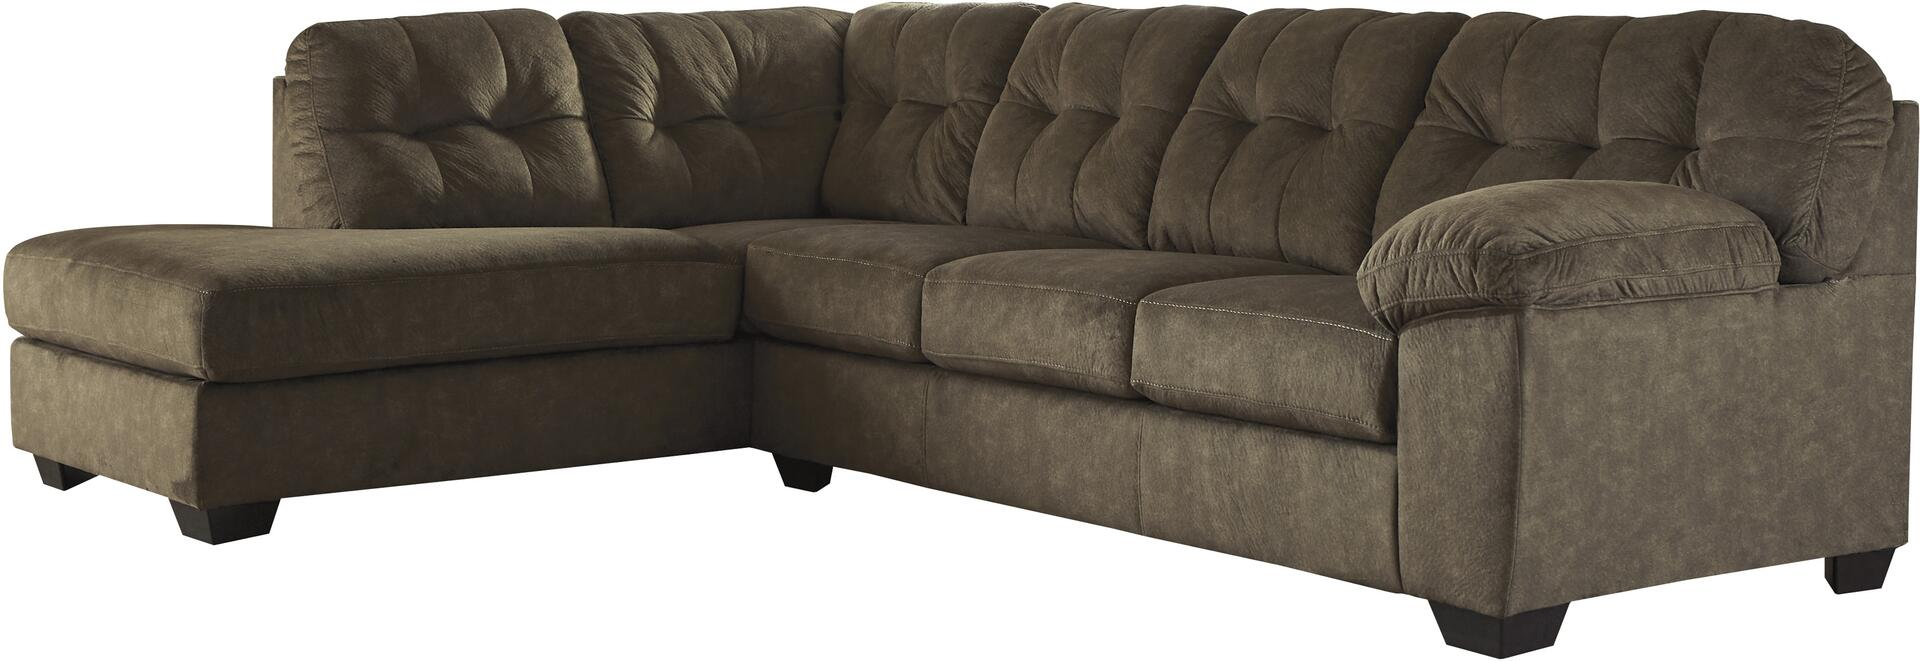 Signature Design By Ashley 705081667 Accrington Series Sofa And Chaise Fabric Sofa Appliances